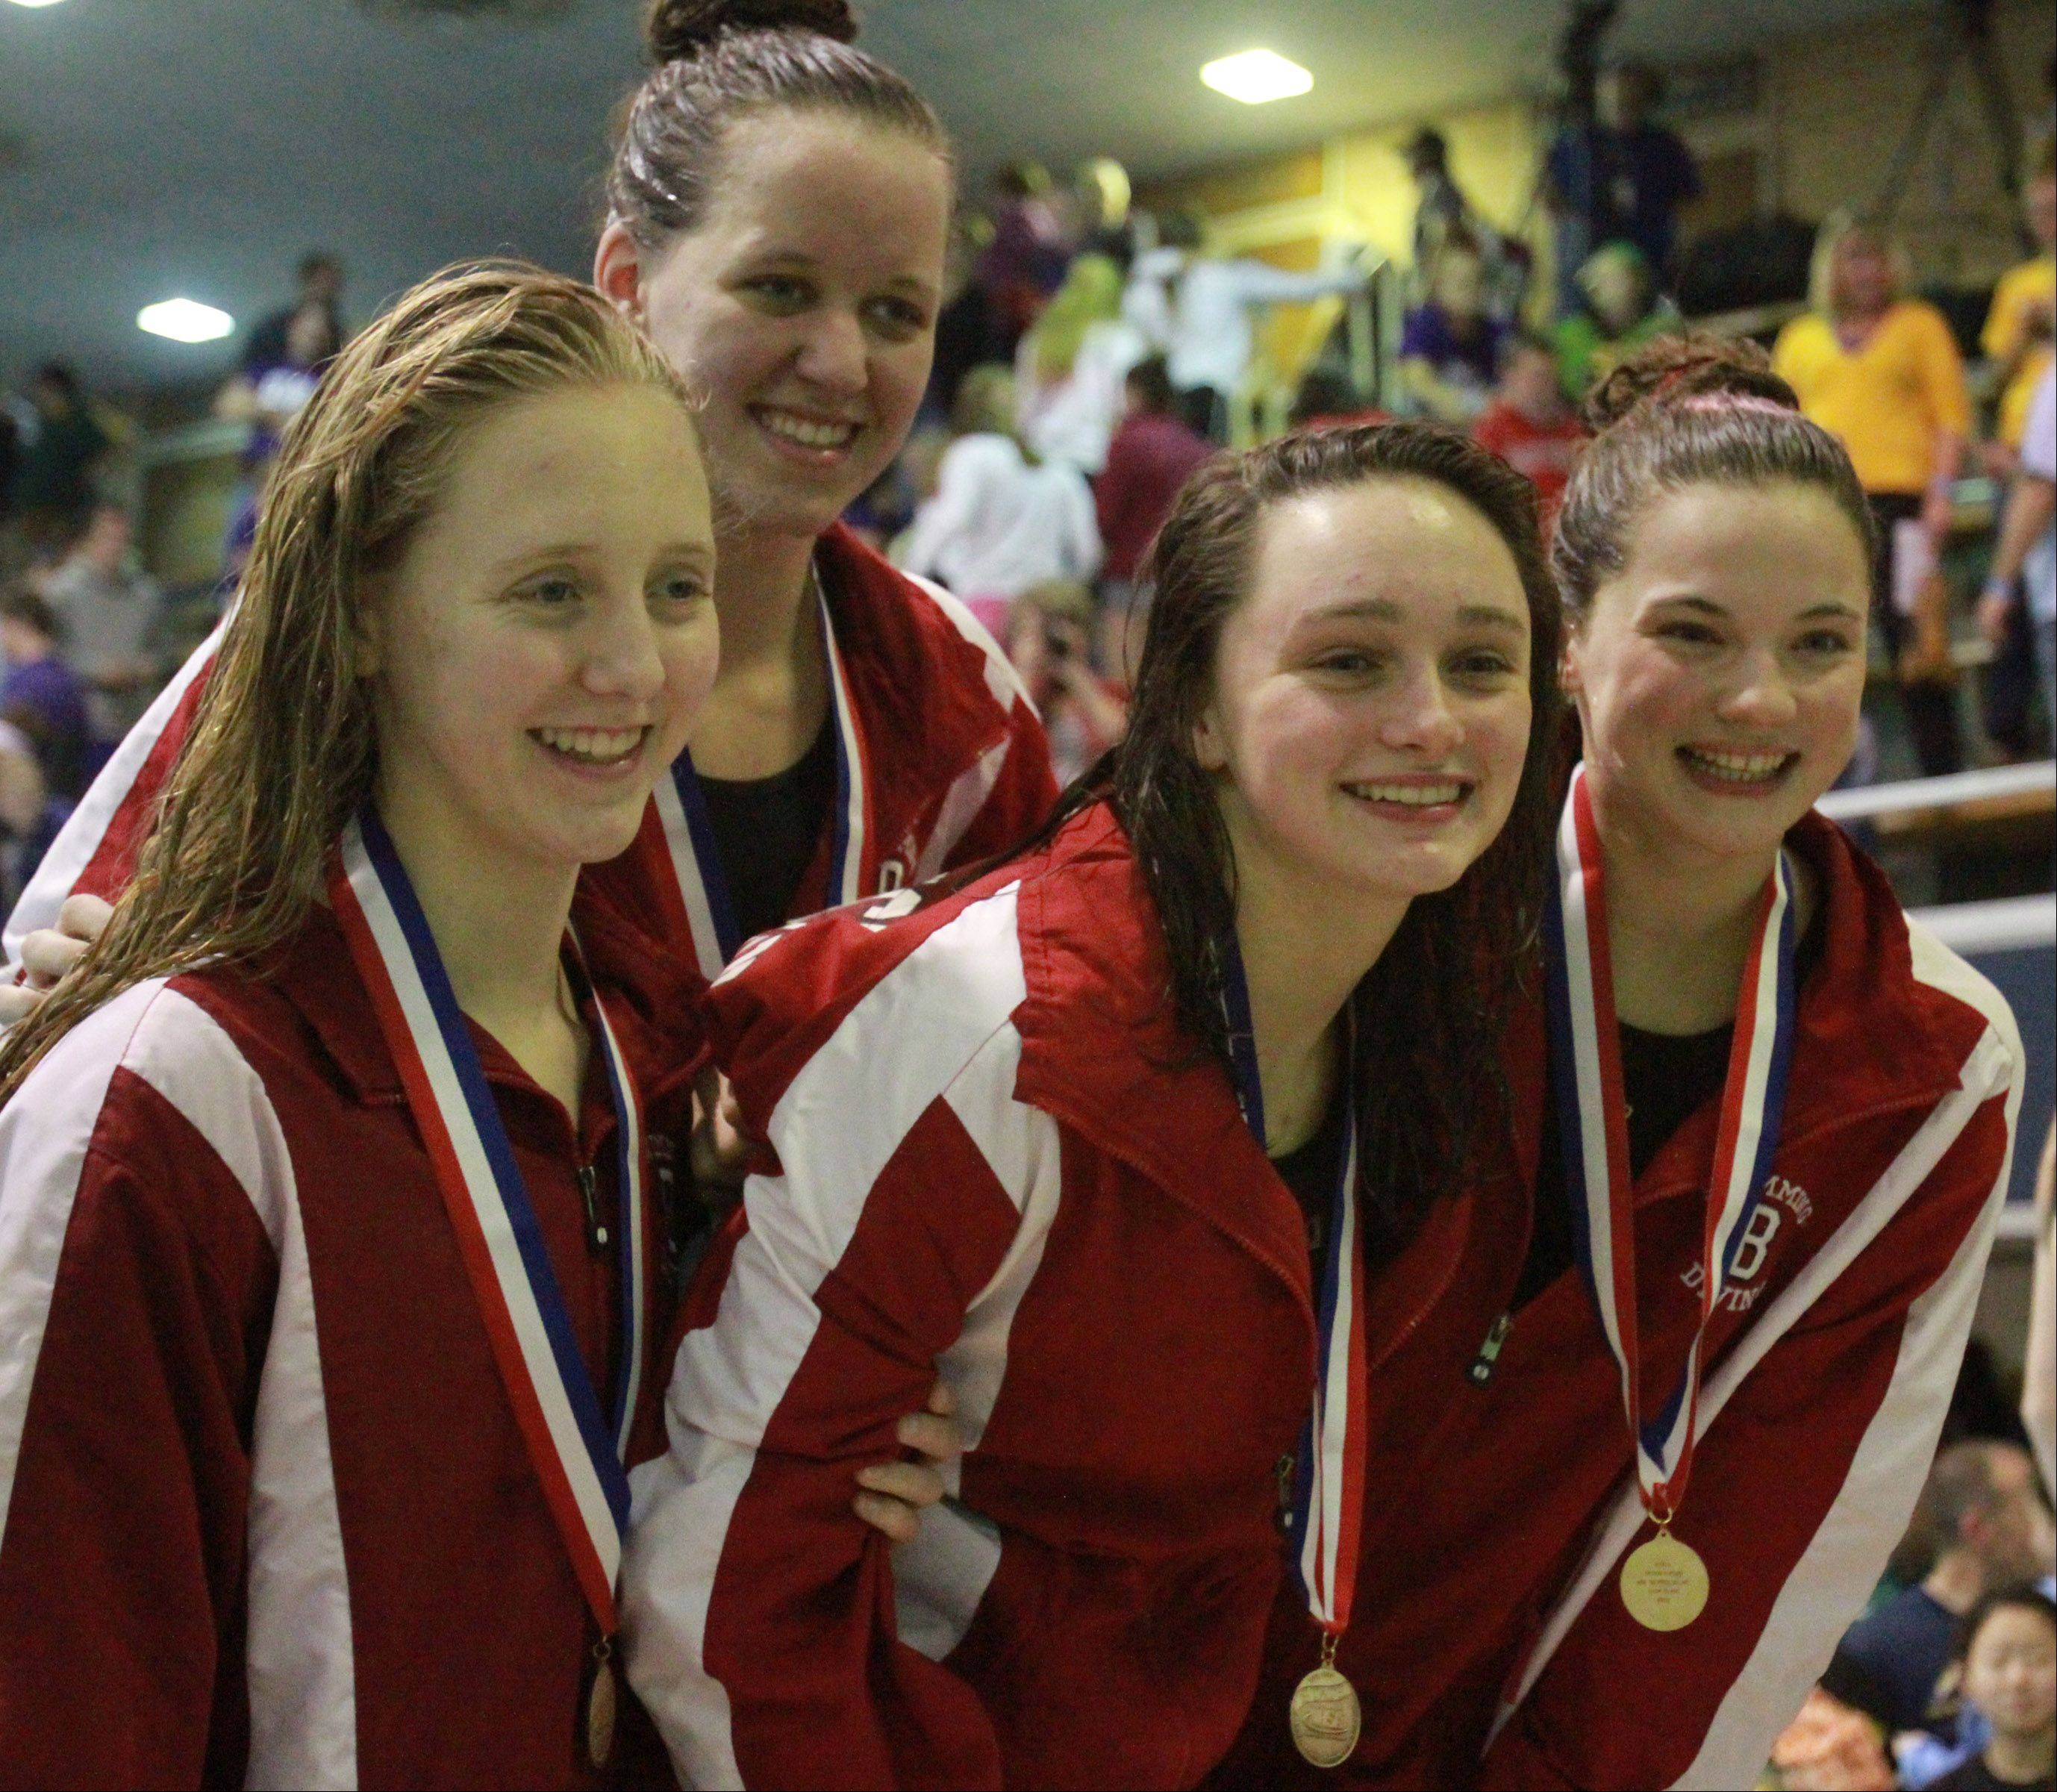 Barrington's Emma Barnett, Mekenna Scheitlin, Kristen Jacobsen, and Kayla Widdowson placed eleventh in the 400-yard freestyle relay at the IHSA state championships in Evanston on Saturday.